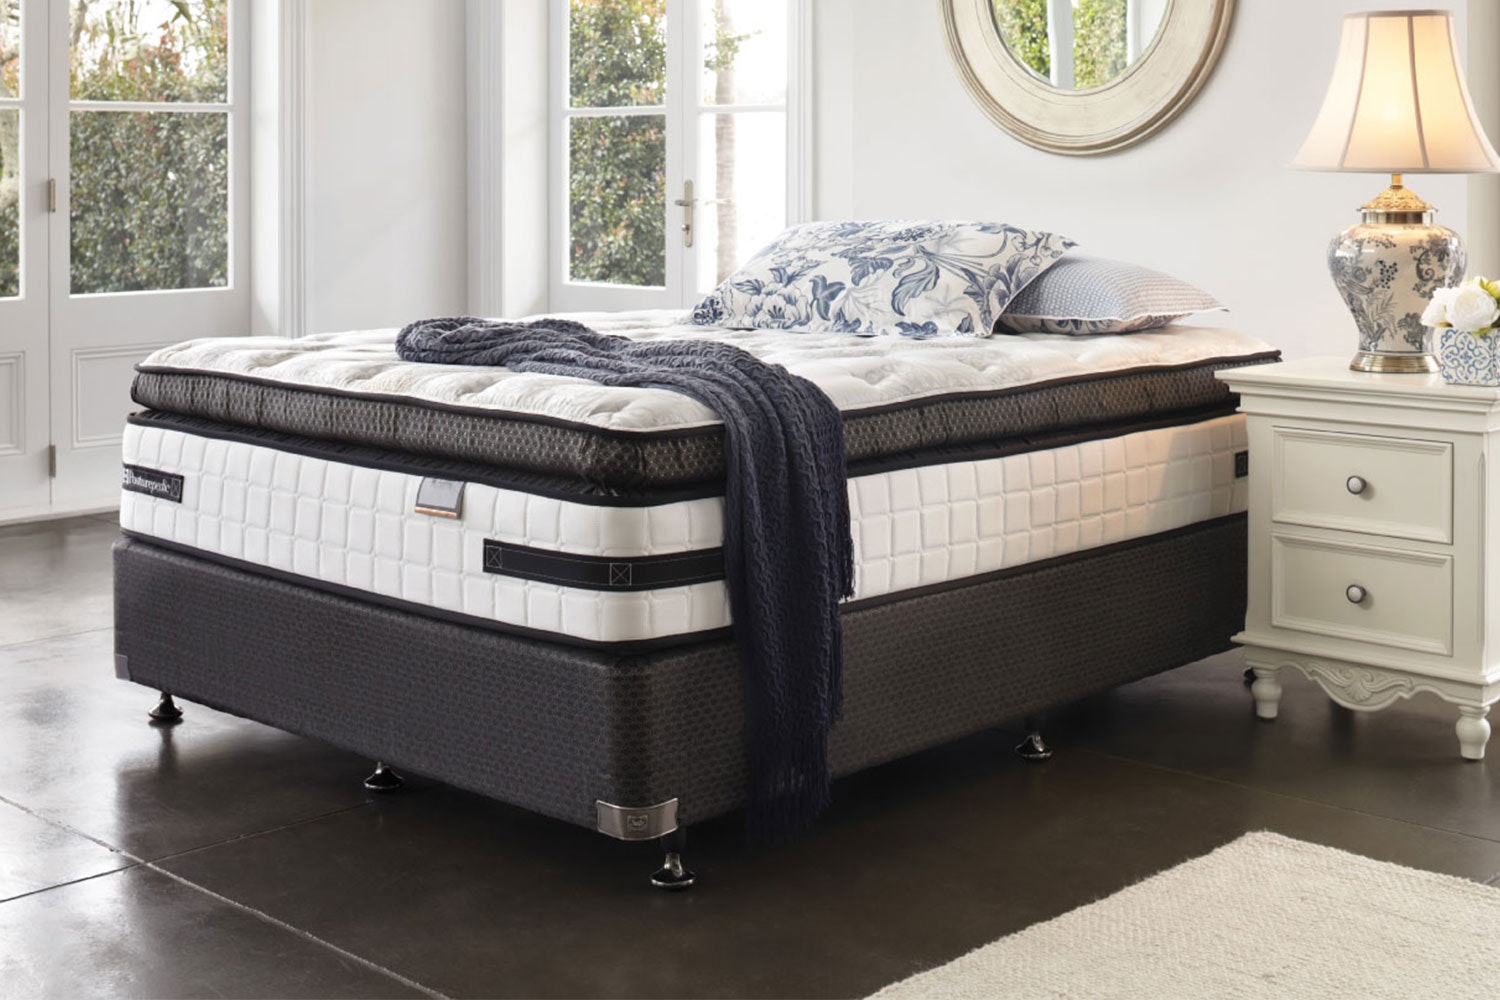 Kensington Ultra Plush King Single Bed by Sealy Posturepedic